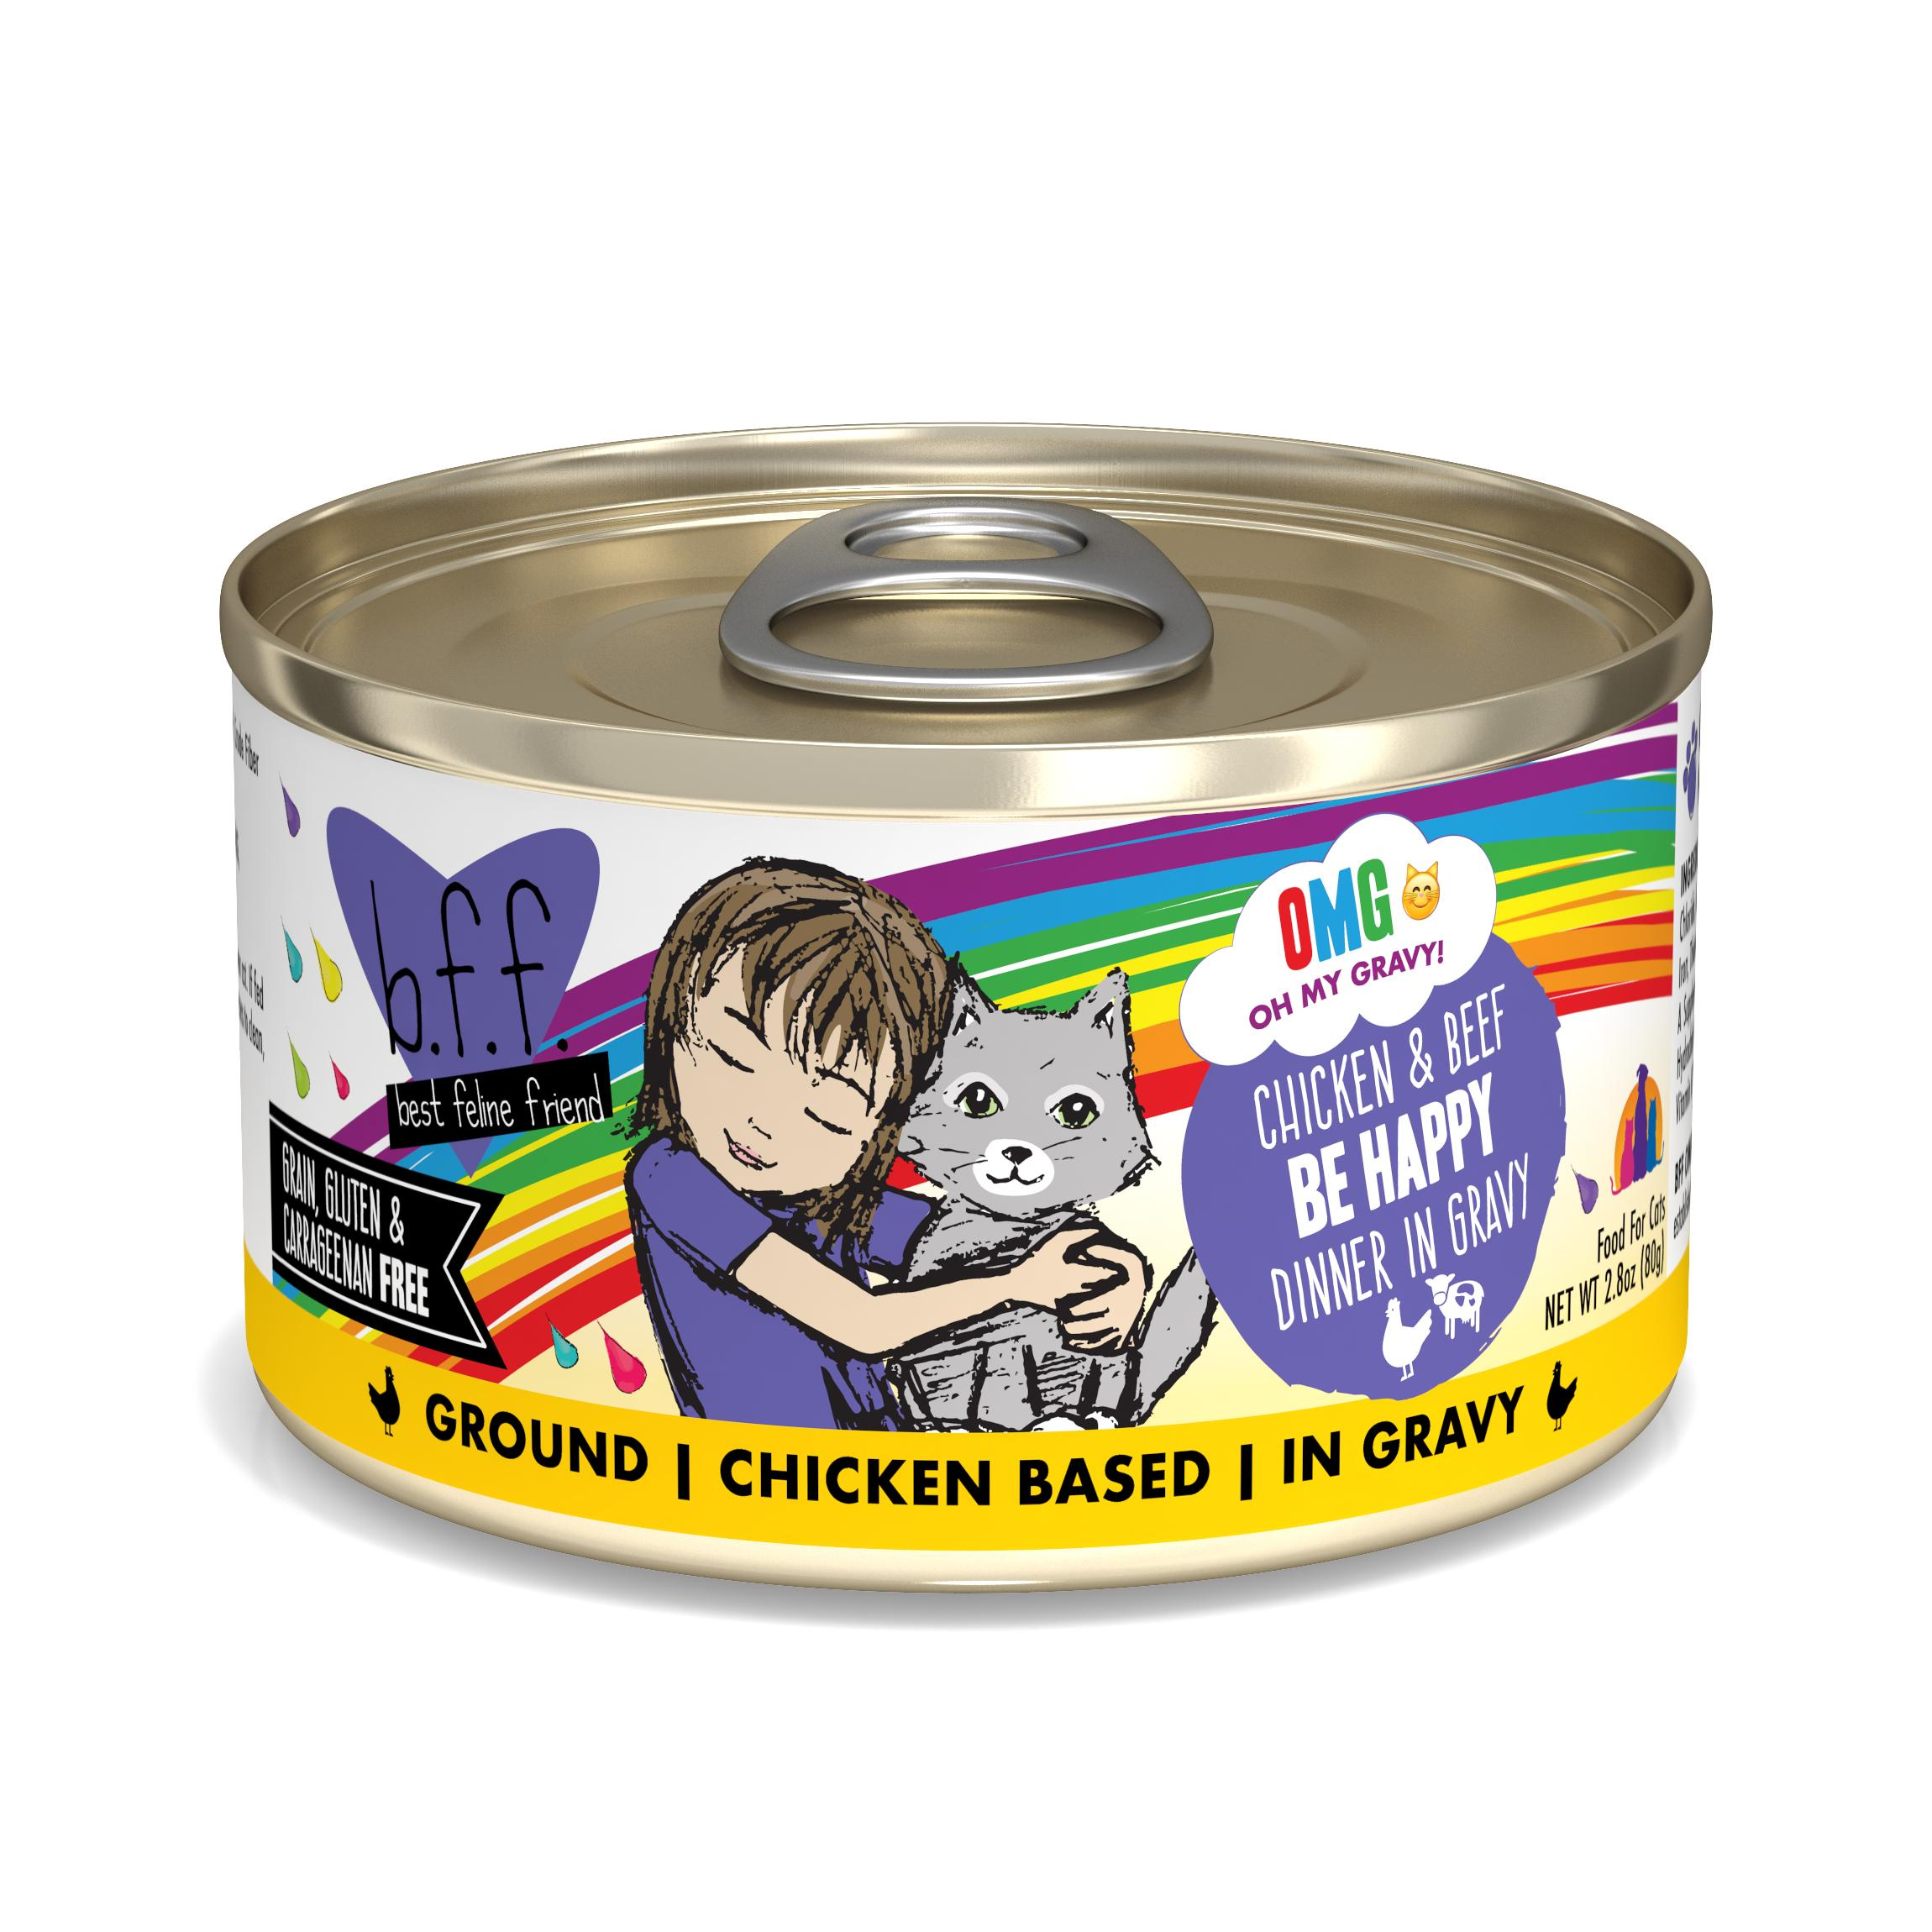 BFF Oh My Gravy! Be Happy! Chicken & Beef Dinner in Gravy Grain-Free Wet Cat Food Image